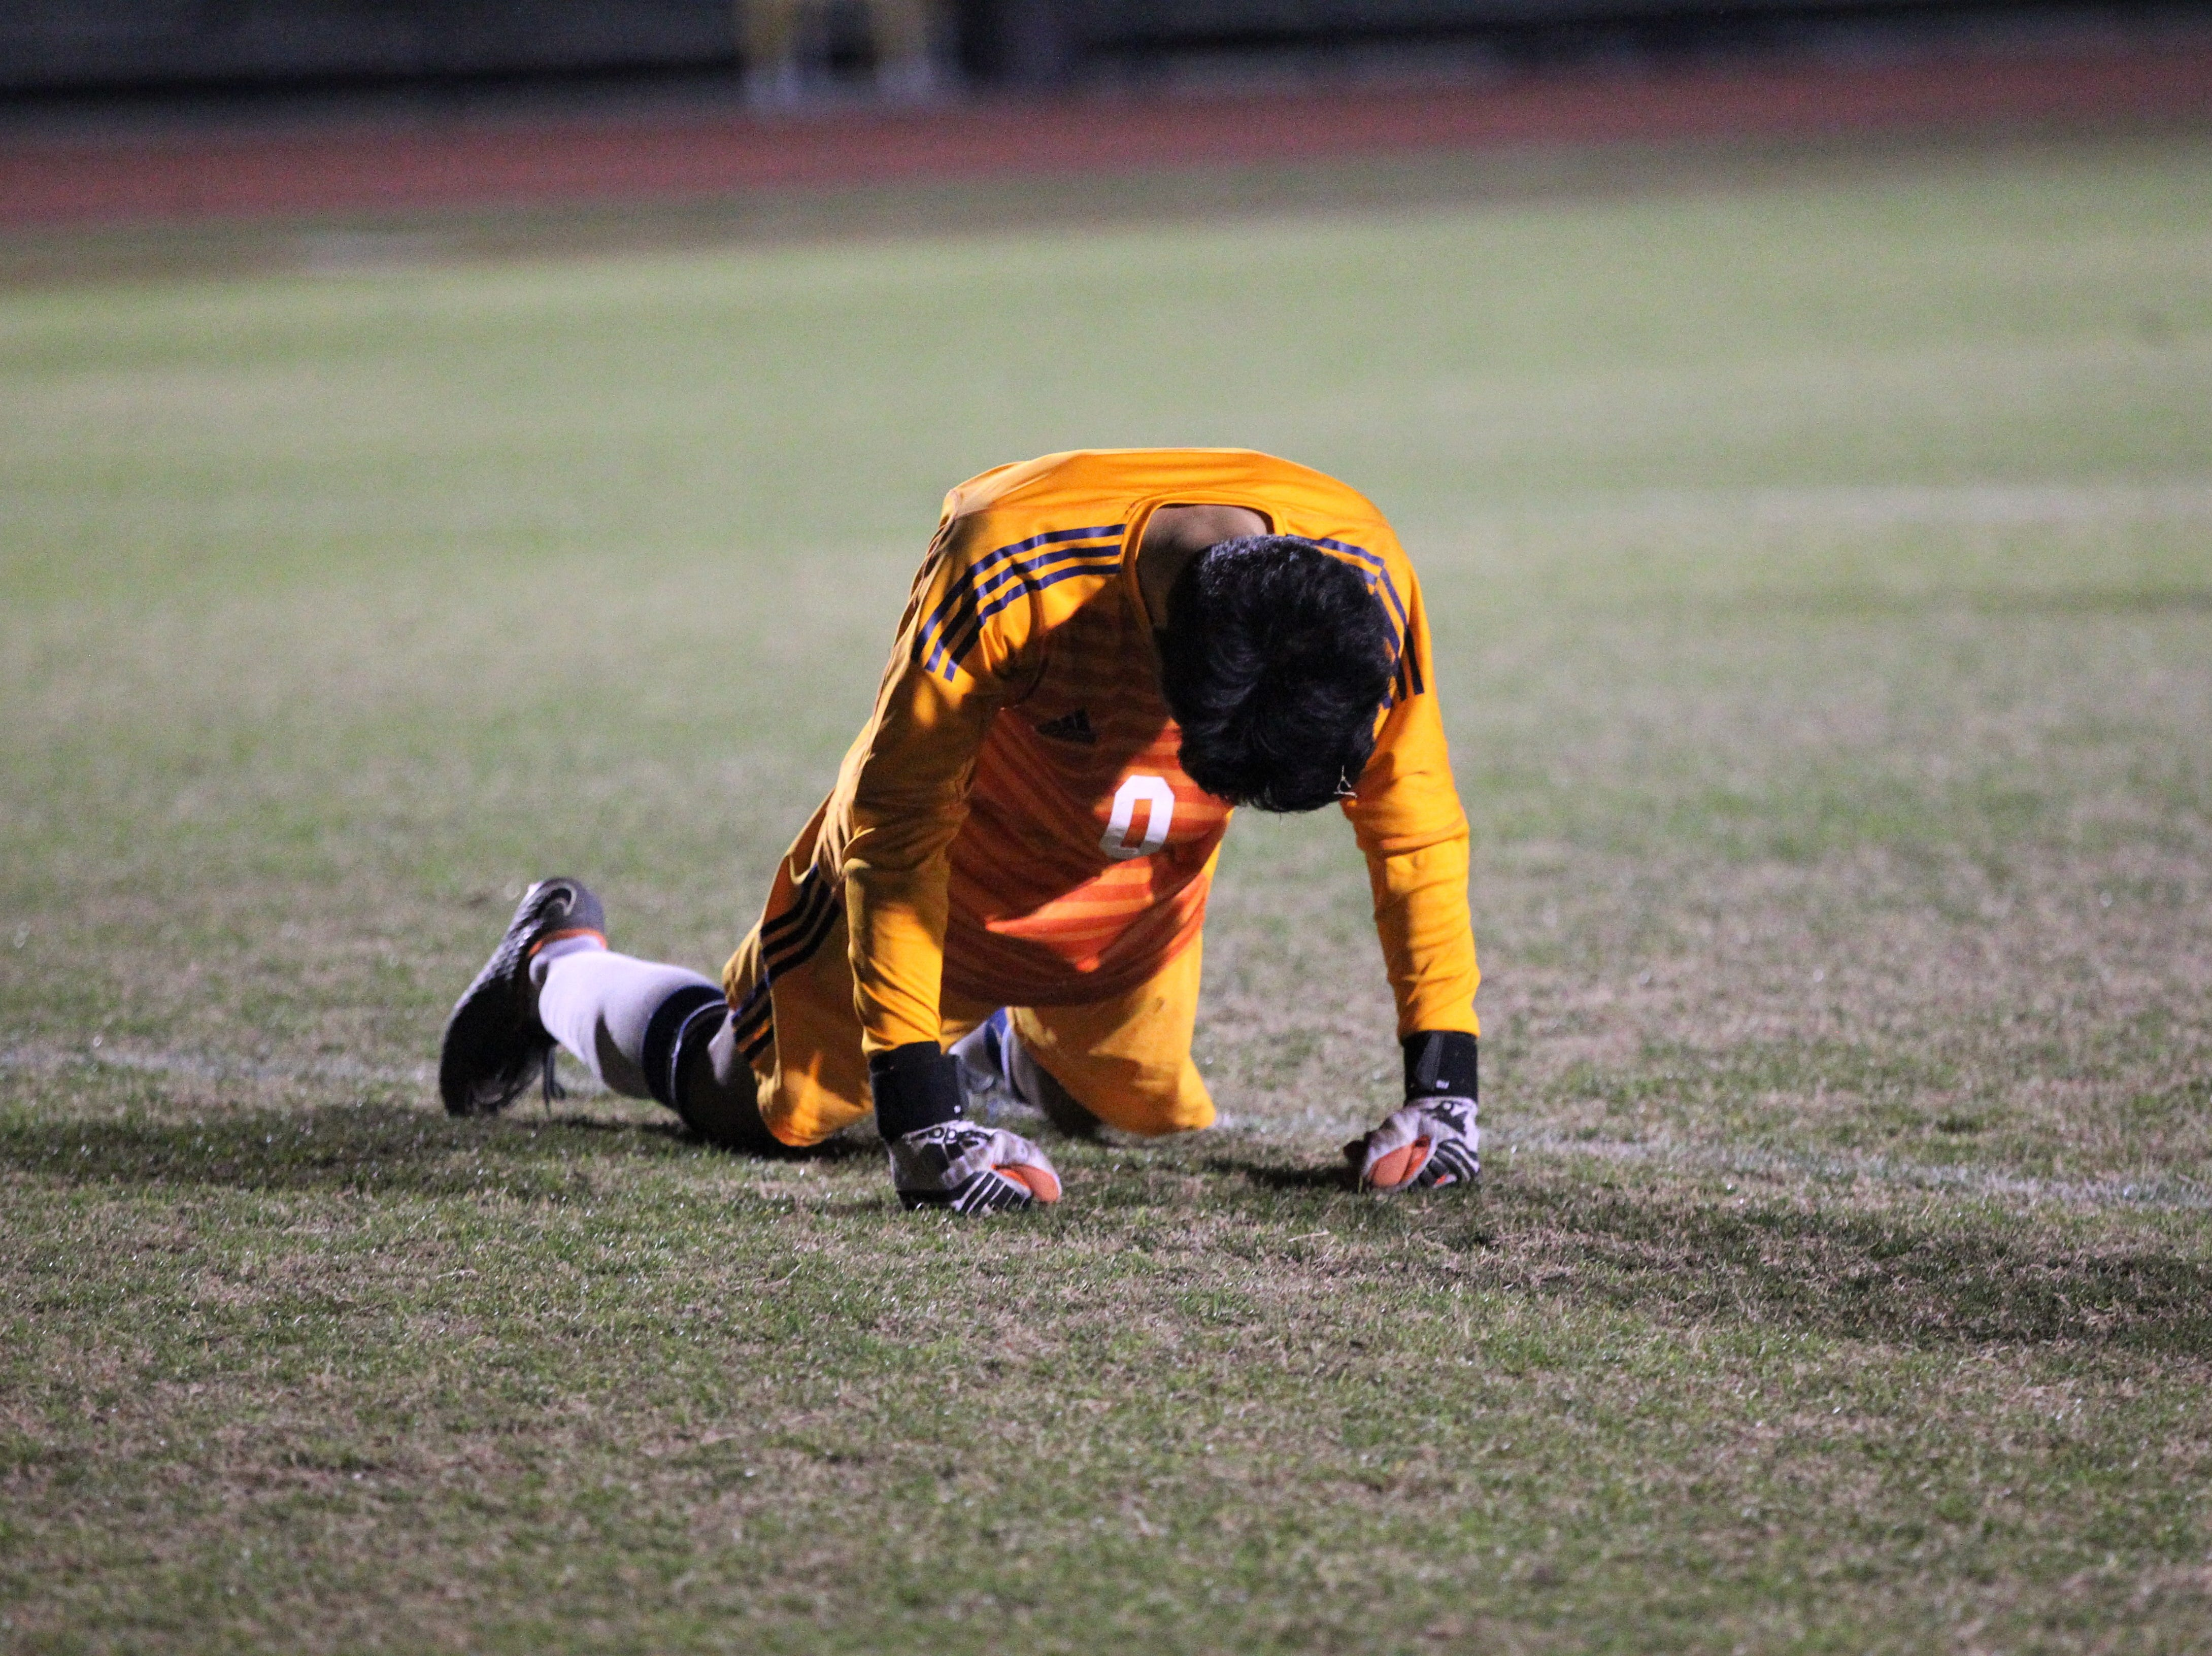 South Walton's keeper gets up after allowing a goal to Beecher Lewis as Florida High's boys soccer team beat South Walton 2-0 during a Region 1-2A quarterfinal on Feb. 6, 2018.